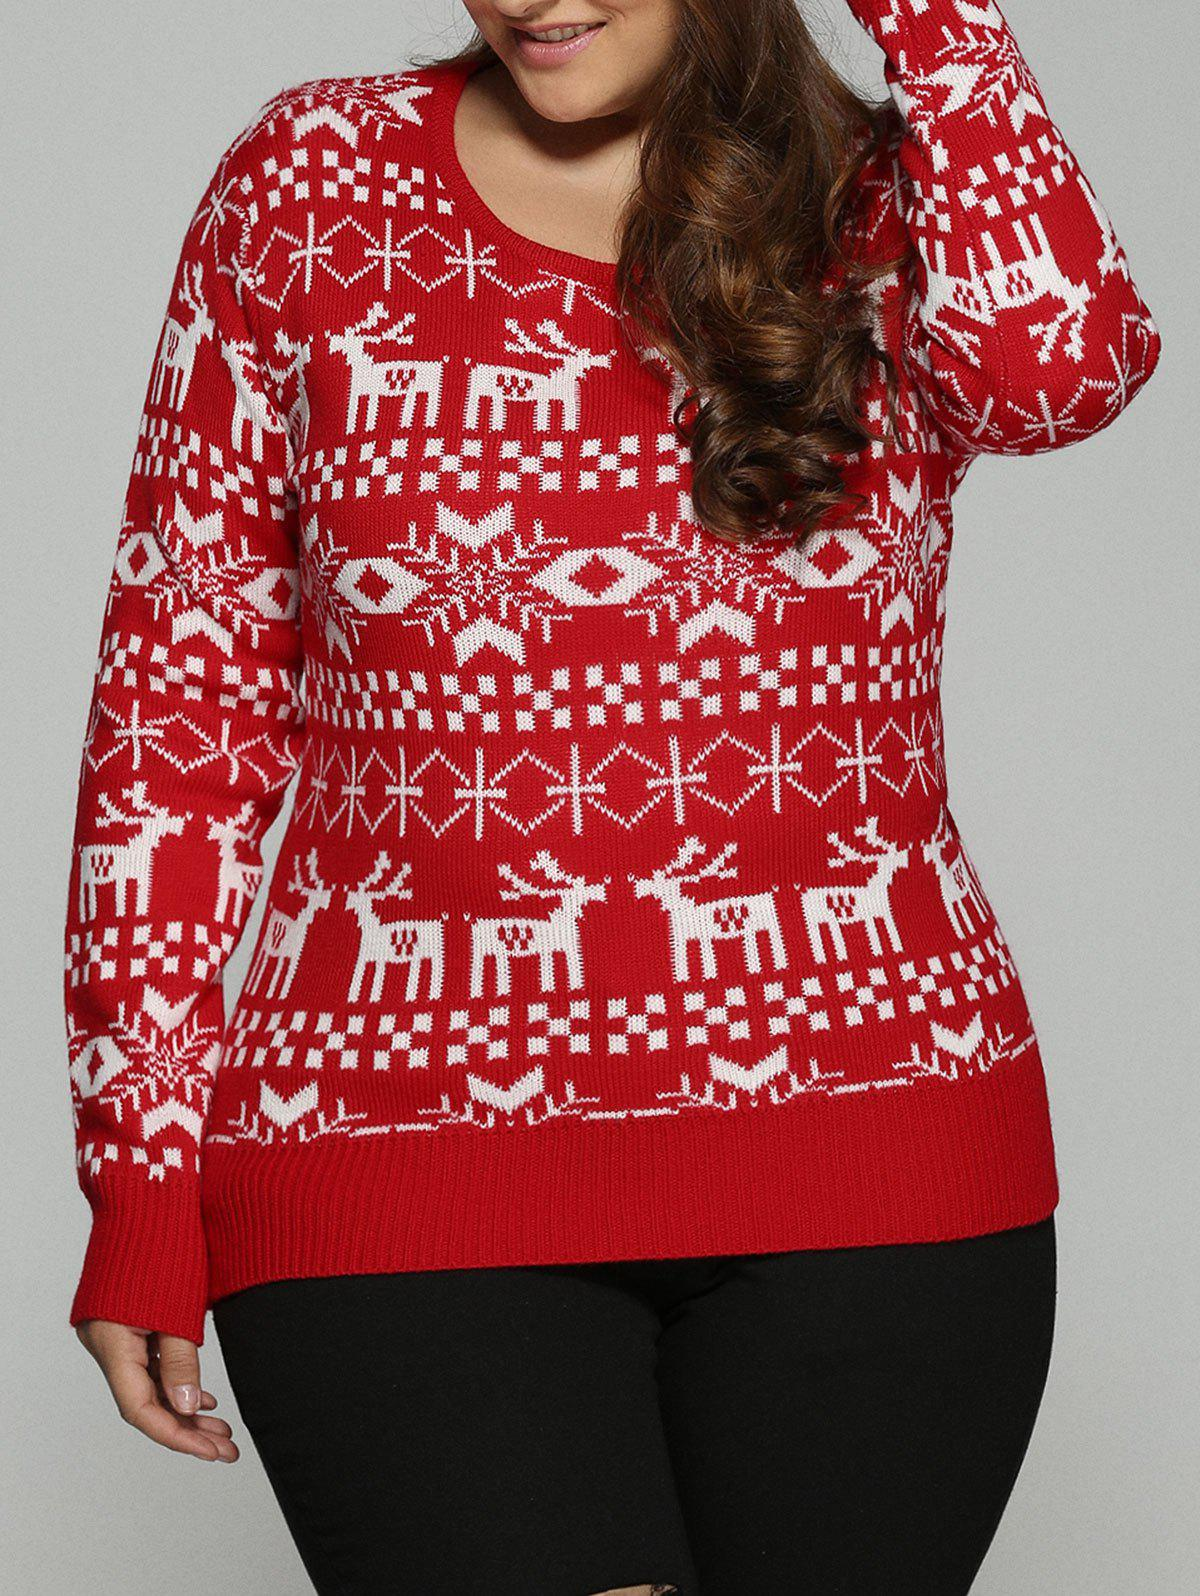 Plus Size Christmas Jacquard Knit SweaterWOMEN<br><br>Size: 2XL; Color: RED; Type: Pullovers; Material: Polyester; Sleeve Length: Full; Collar: Crew Neck; Style: Fashion; Season: Fall,Spring; Pattern Type: Character; Weight: 0.498kg; Package Contents: 1 x Sweater;